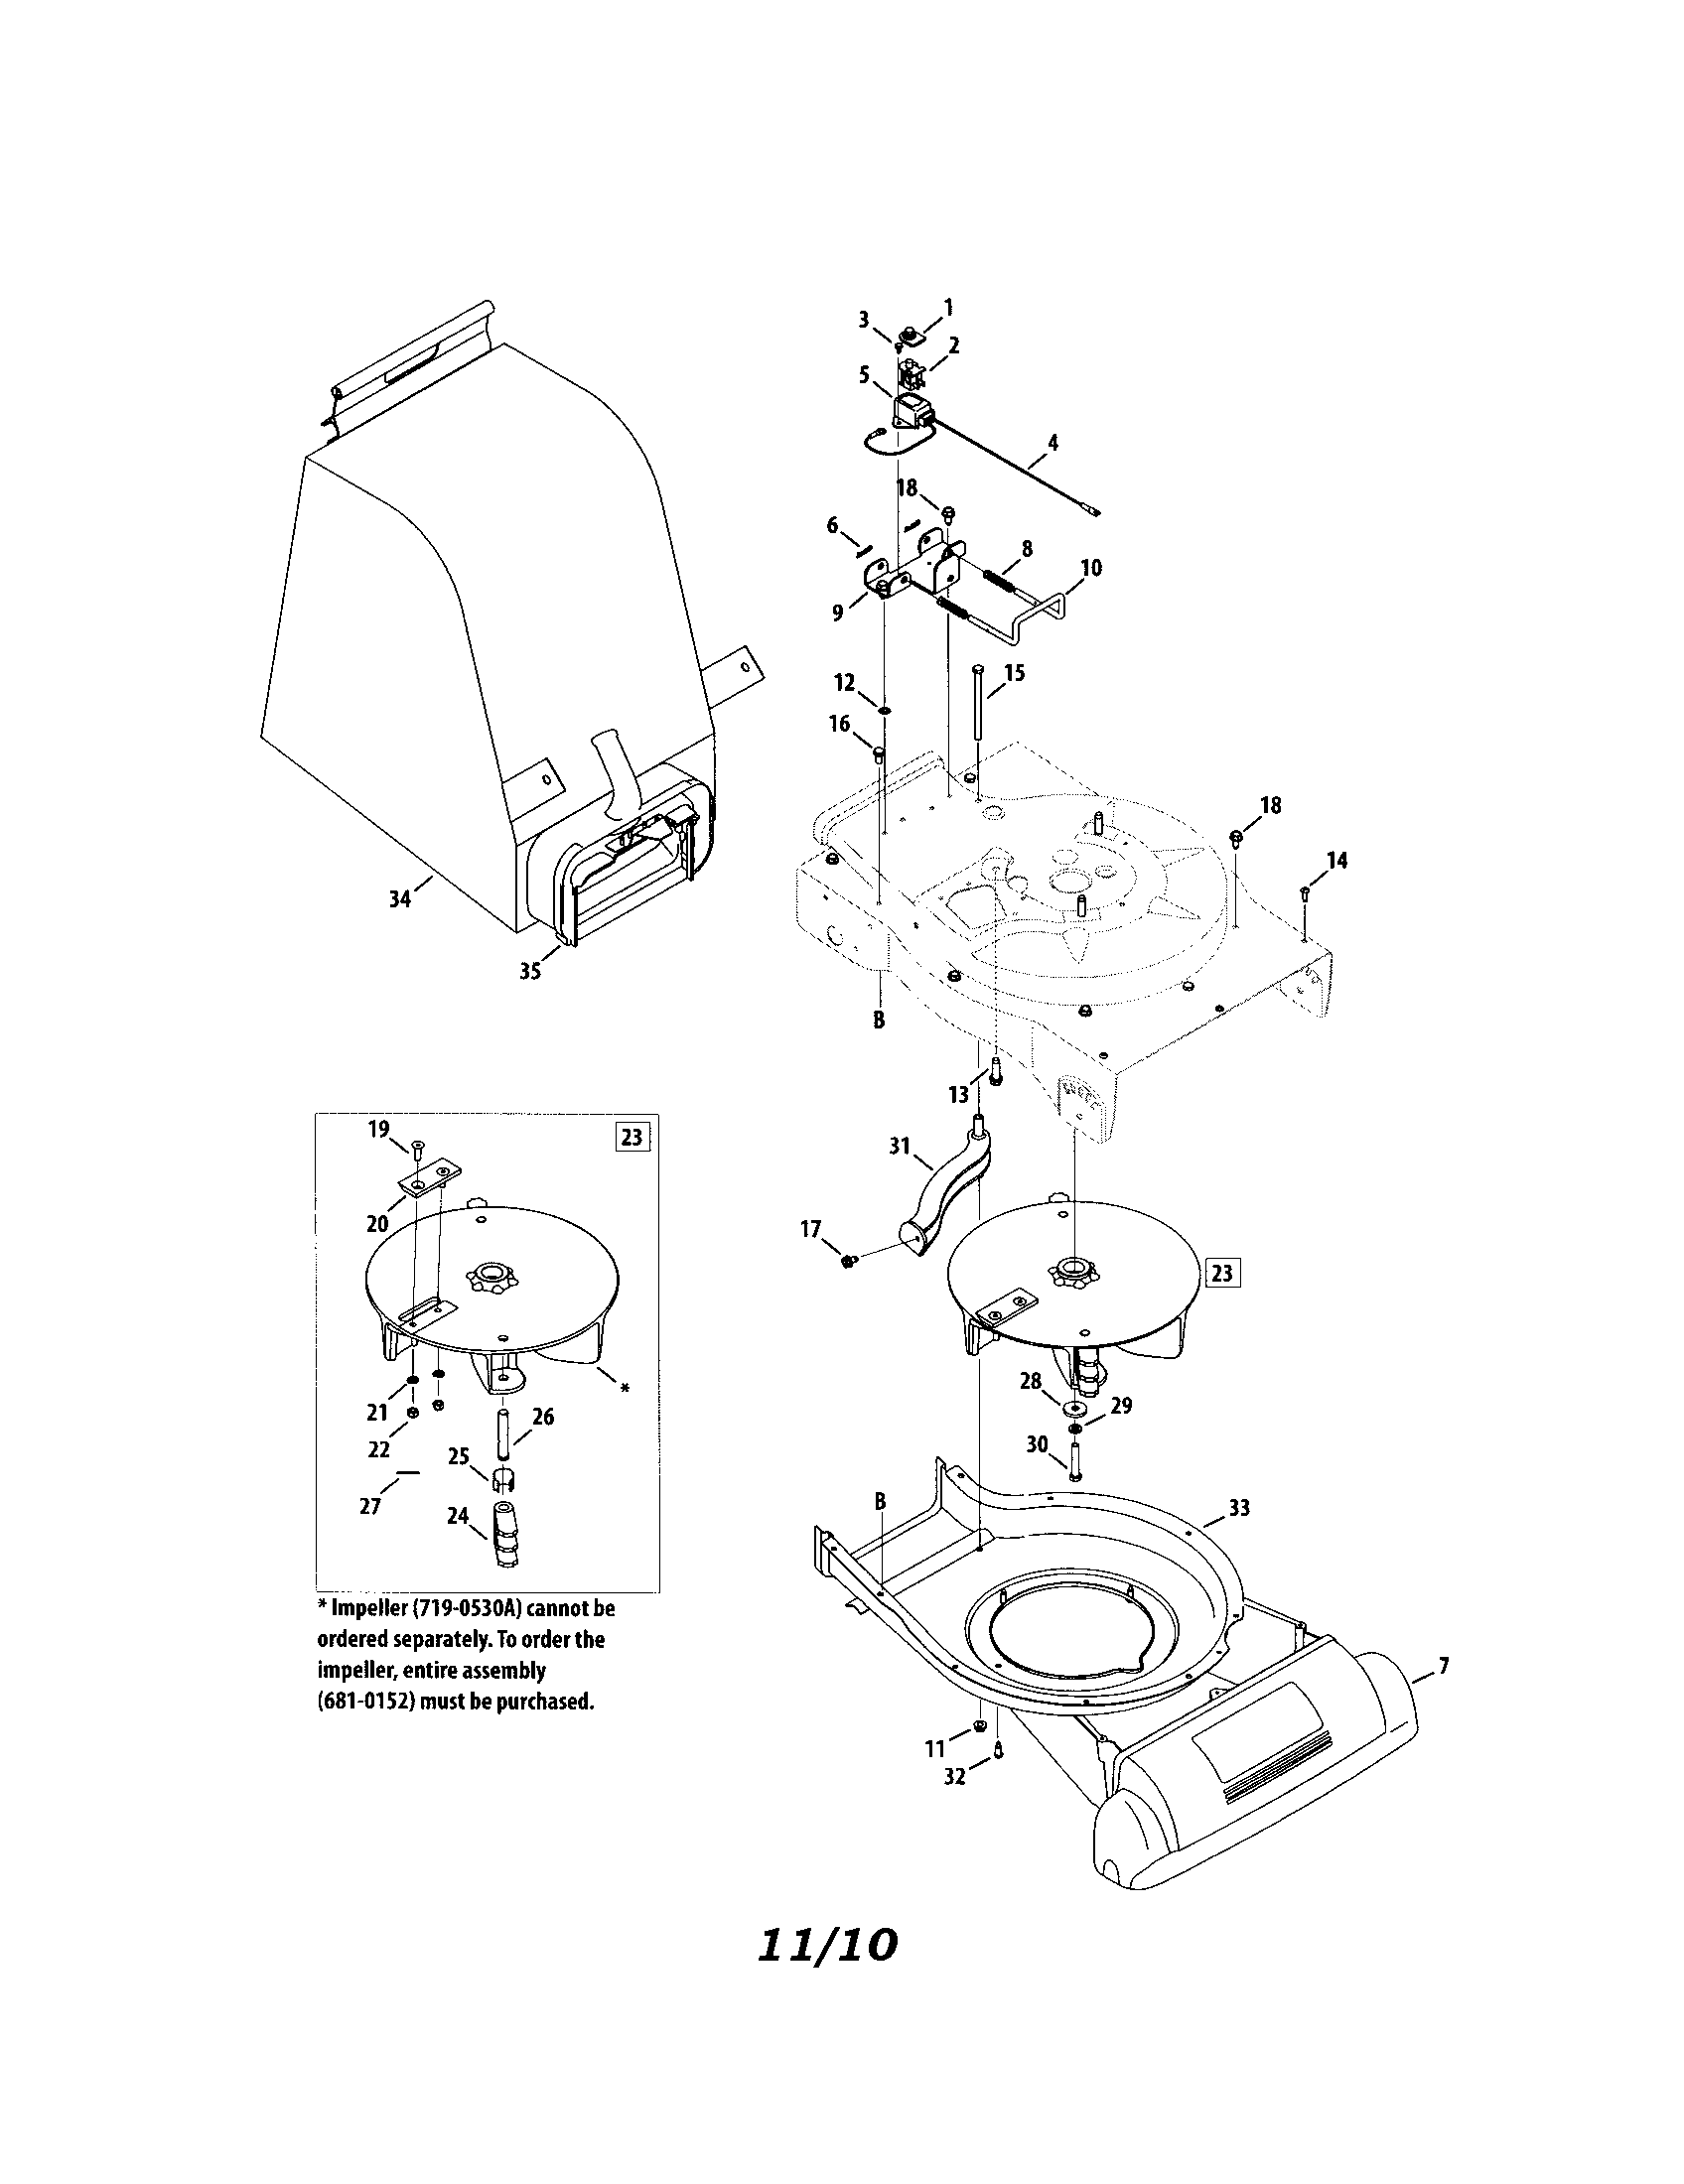 BAG/IMPELLER Diagram & Parts List for Model 24777243